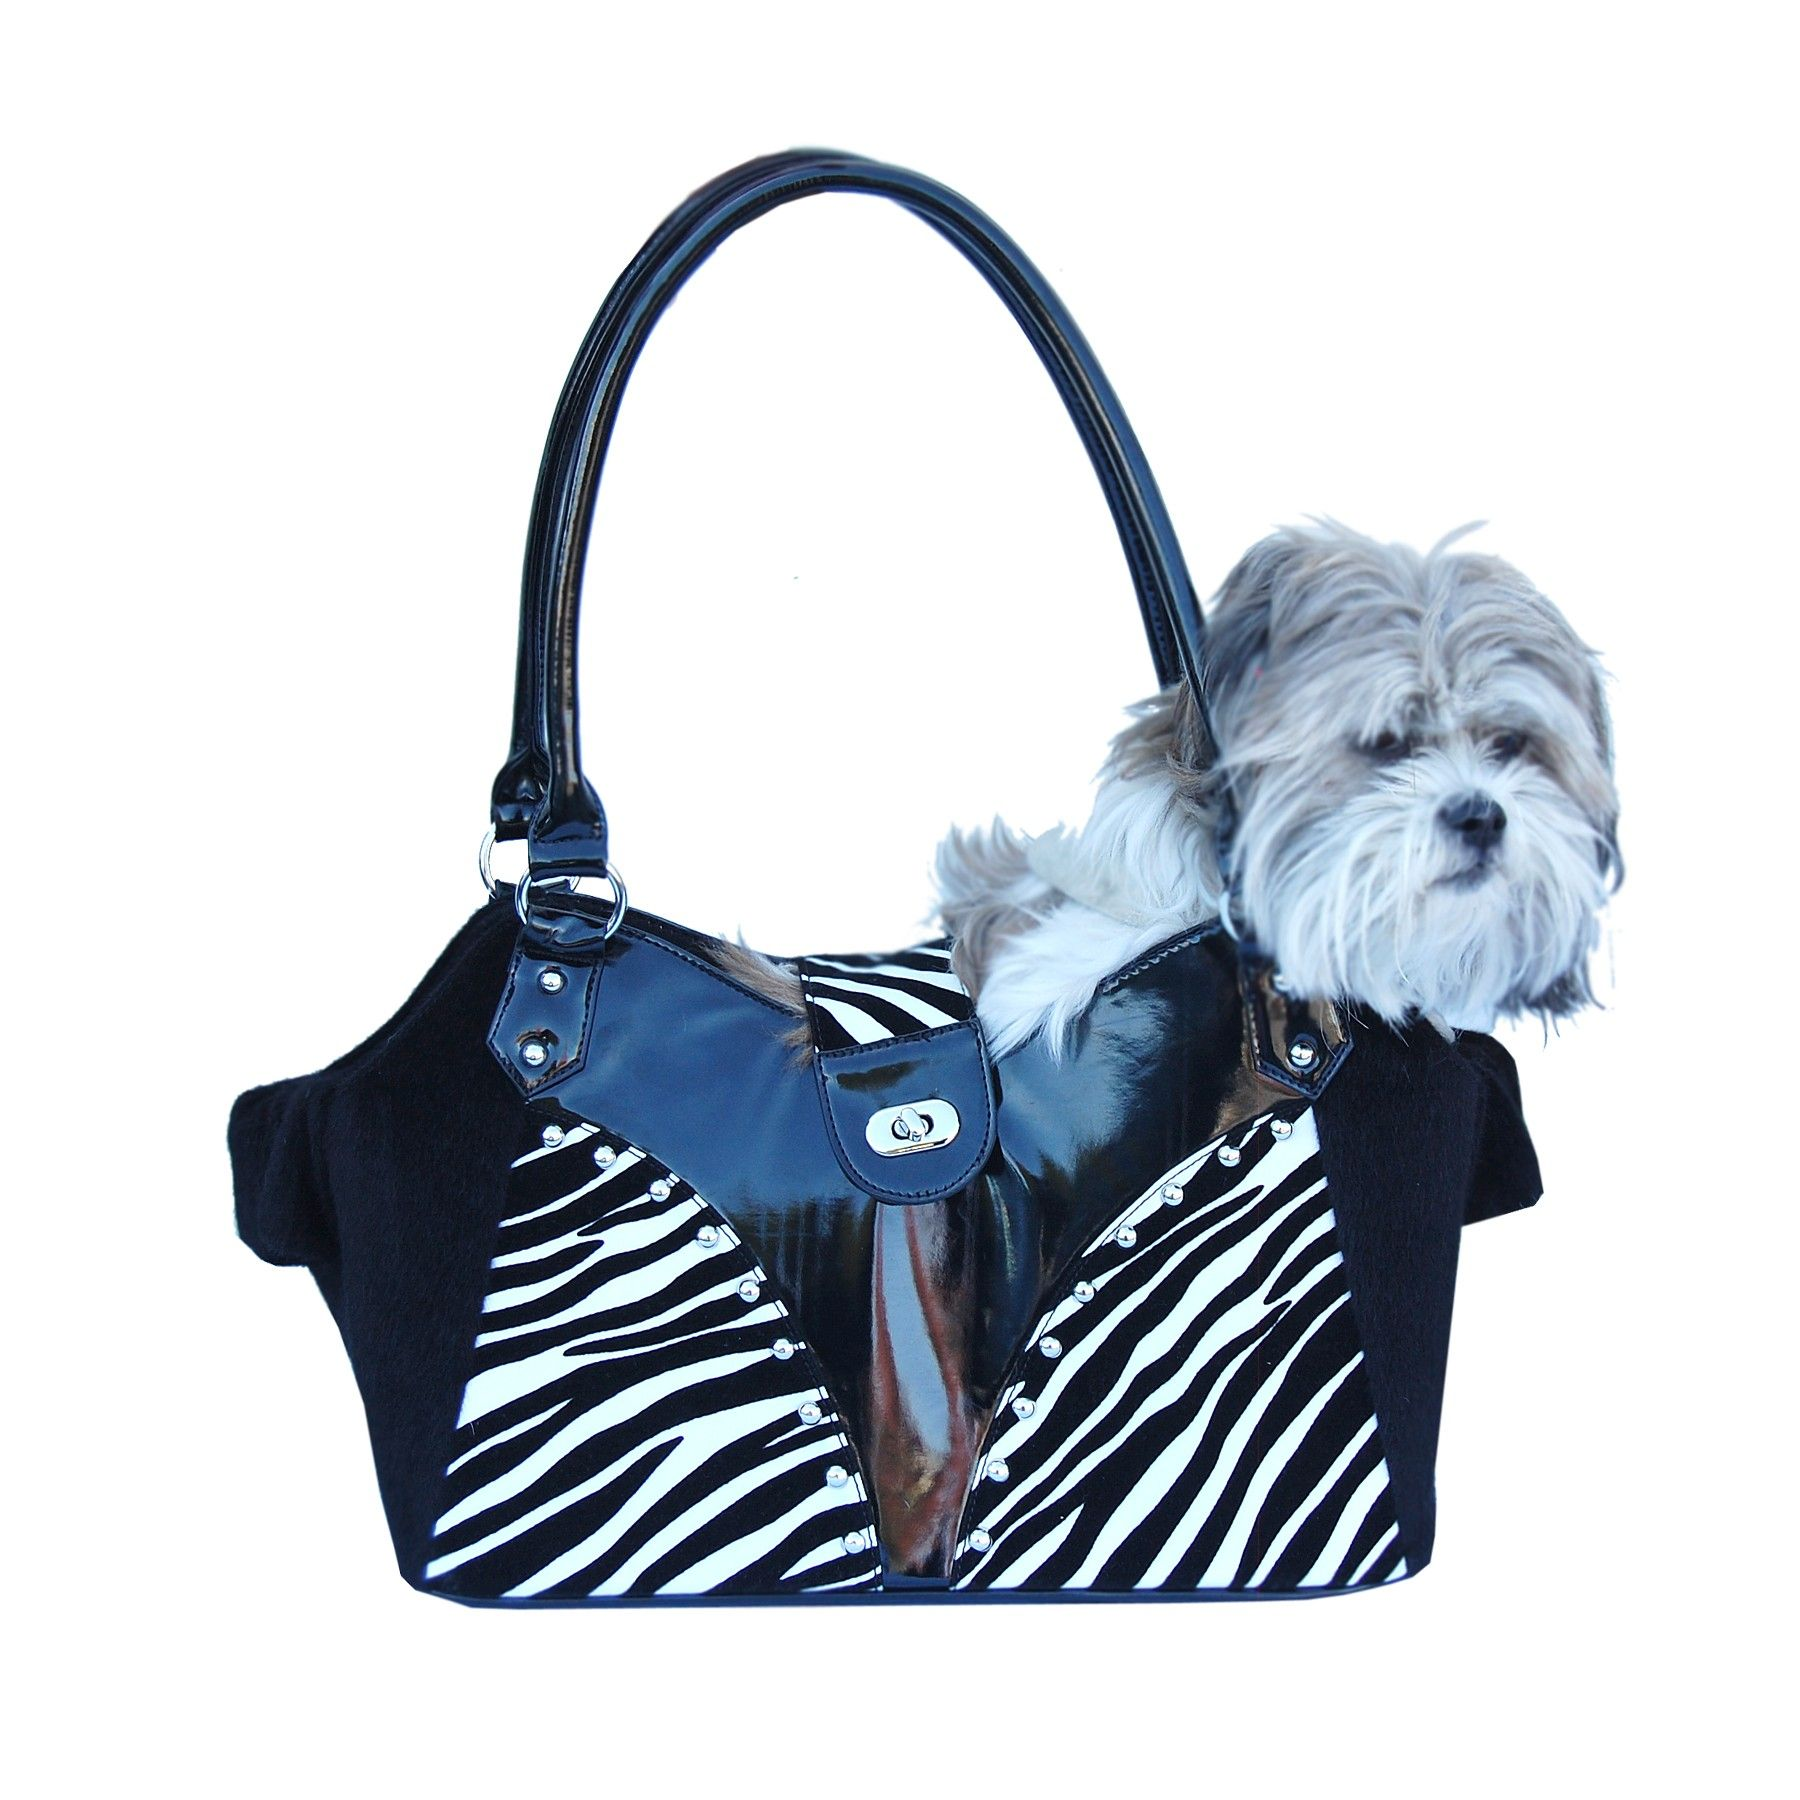 Dual open style dog tote hand bag w/black fur trim